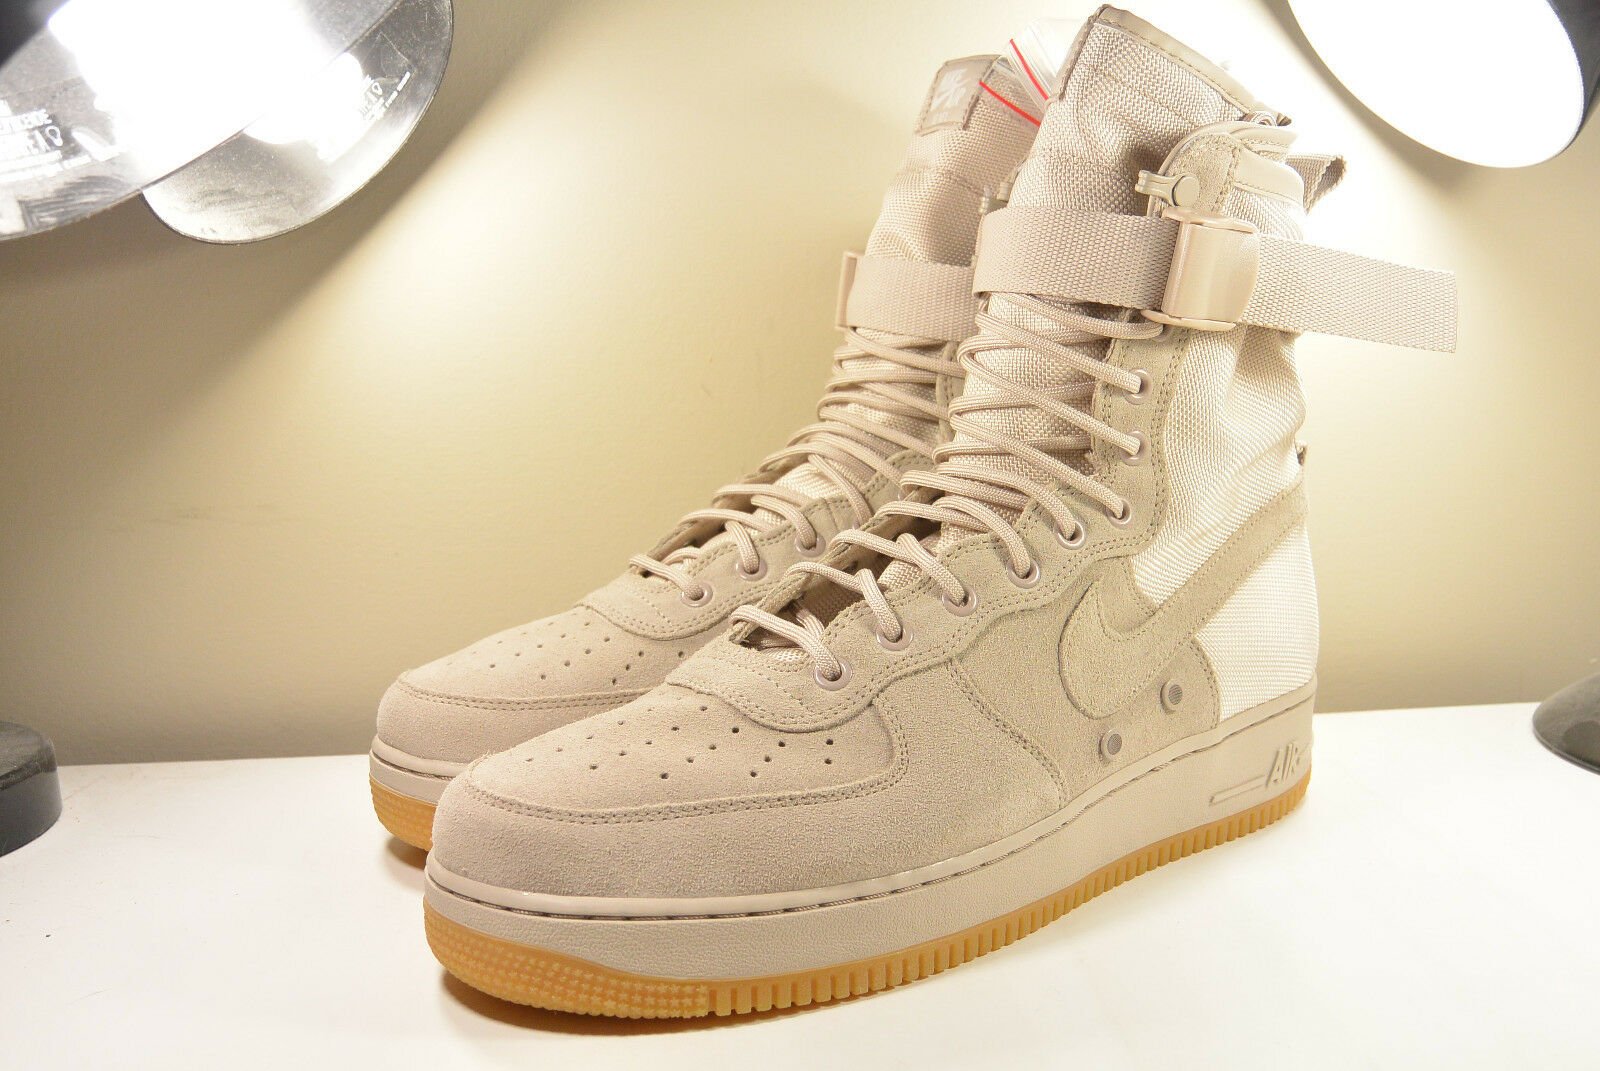 ds nike 2017 2017 nike sf af1 af1 sf air force 1 spcial foamposite suprme a0402a